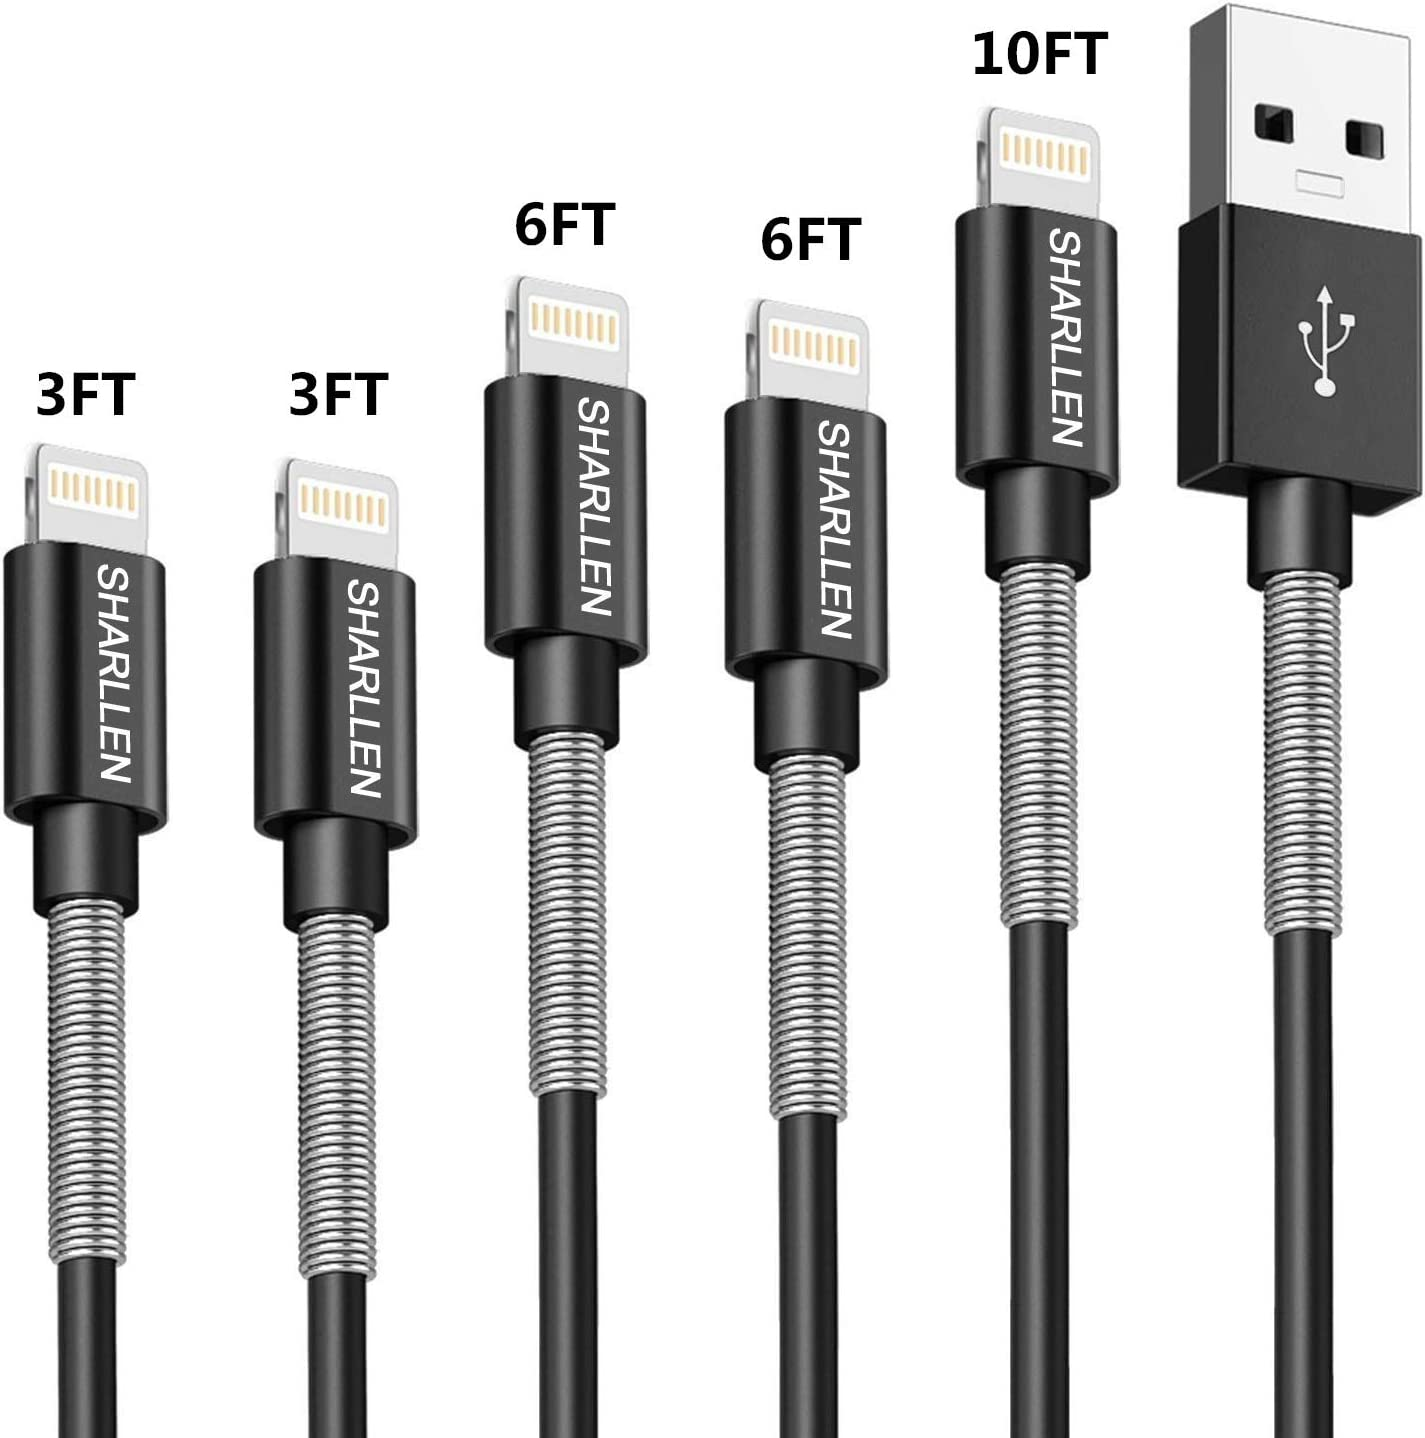 iPhone Charger Cable sharllen Spring Lightning Cable Mfi Certified 5Pack(3ft/3ft/6ft/6ft/10ft) Fast Long iPhone Charging Cord Compatible iPhone XS/Max/XR/X/8/8Plus/7/7P/6S/iPad/iPod/IOS Black